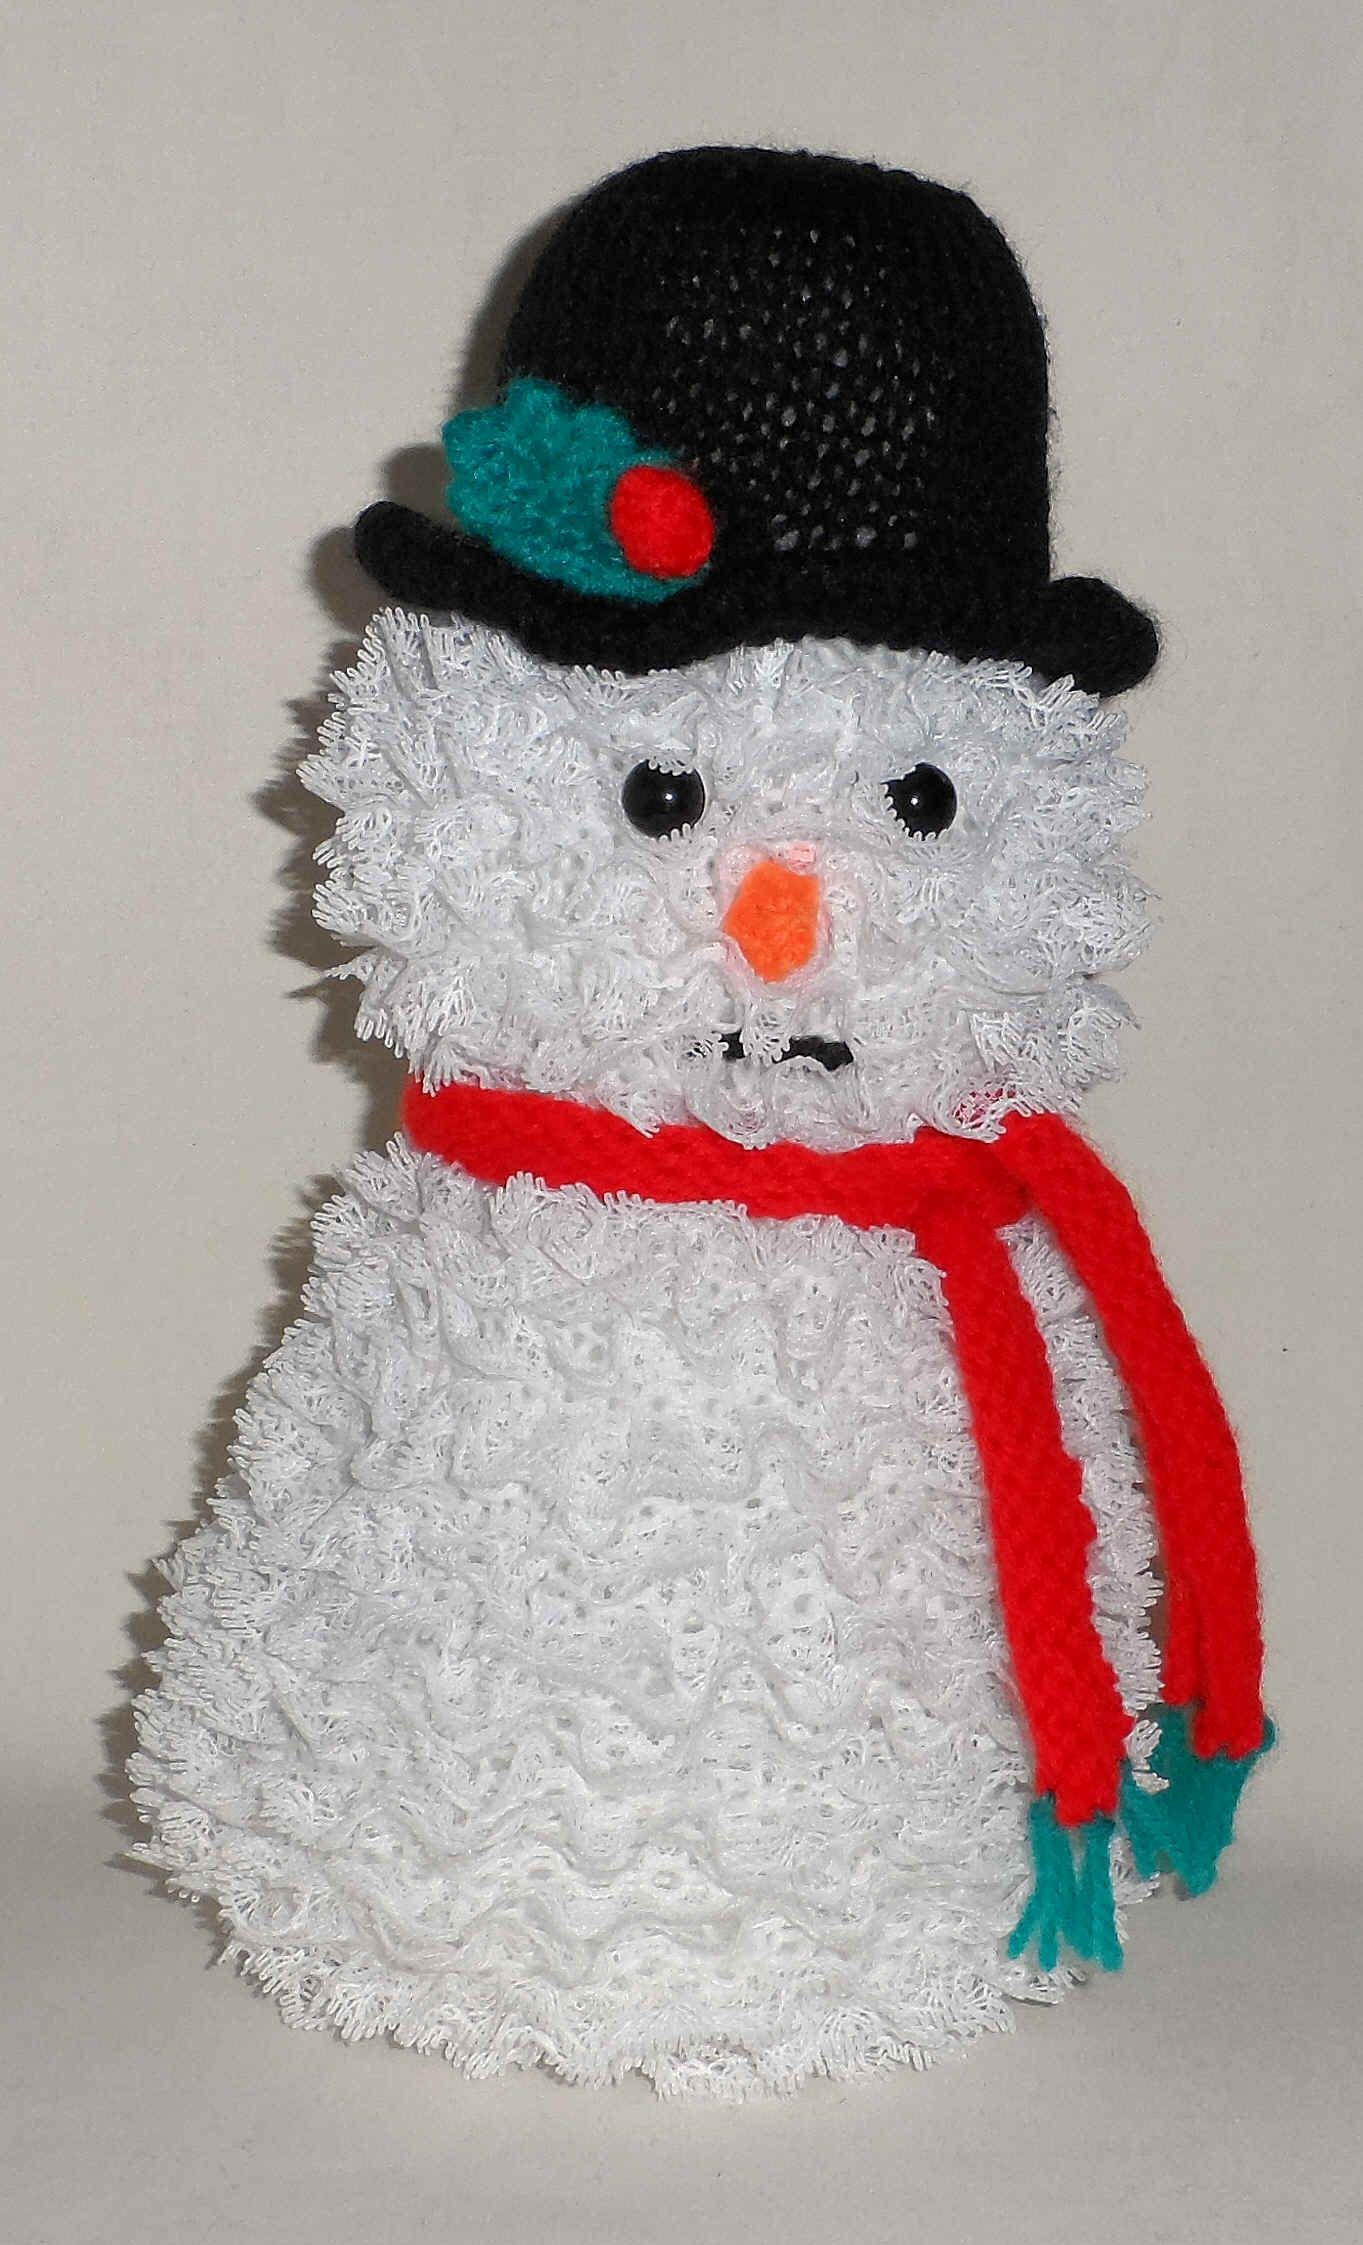 Crochet knitted snowman: photo, description, scheme 91